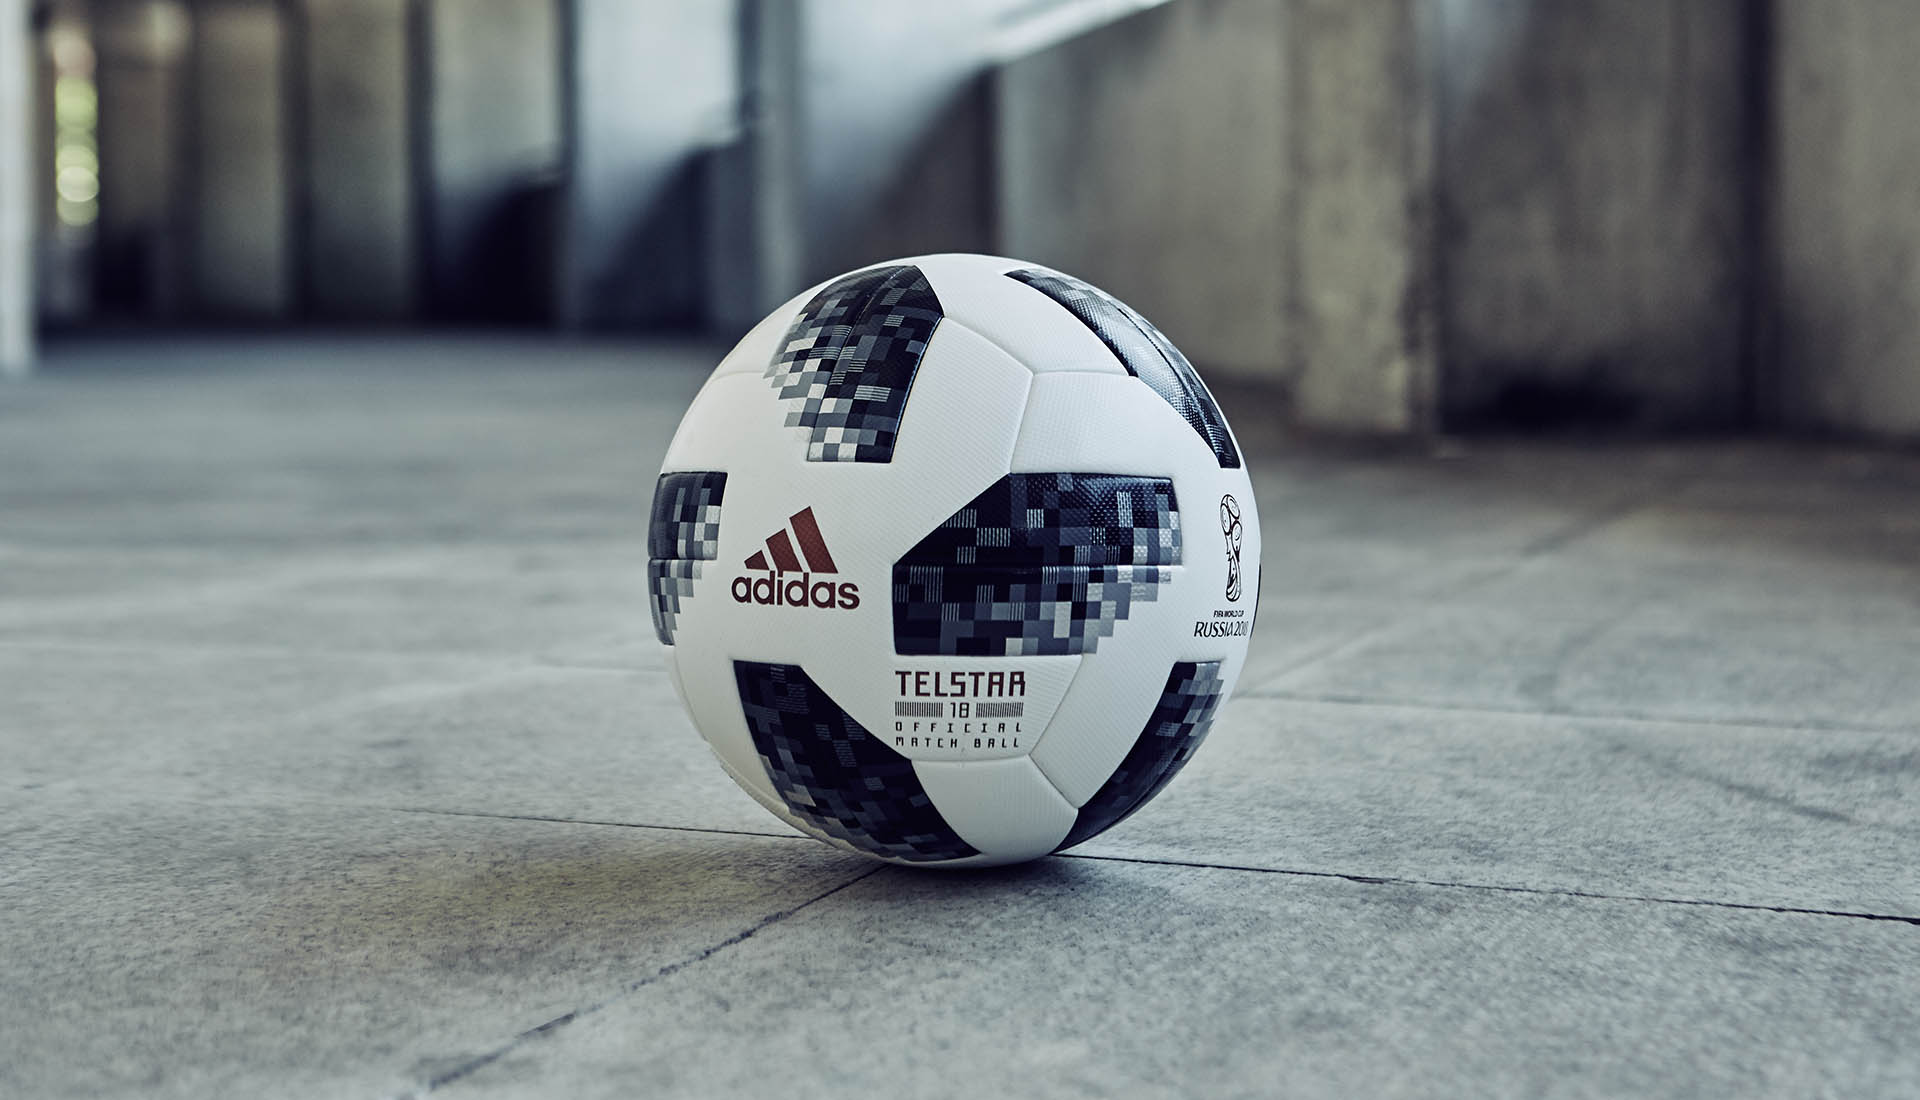 world-cup-match-ball-adidas-soccerbible_0001__fg_1988